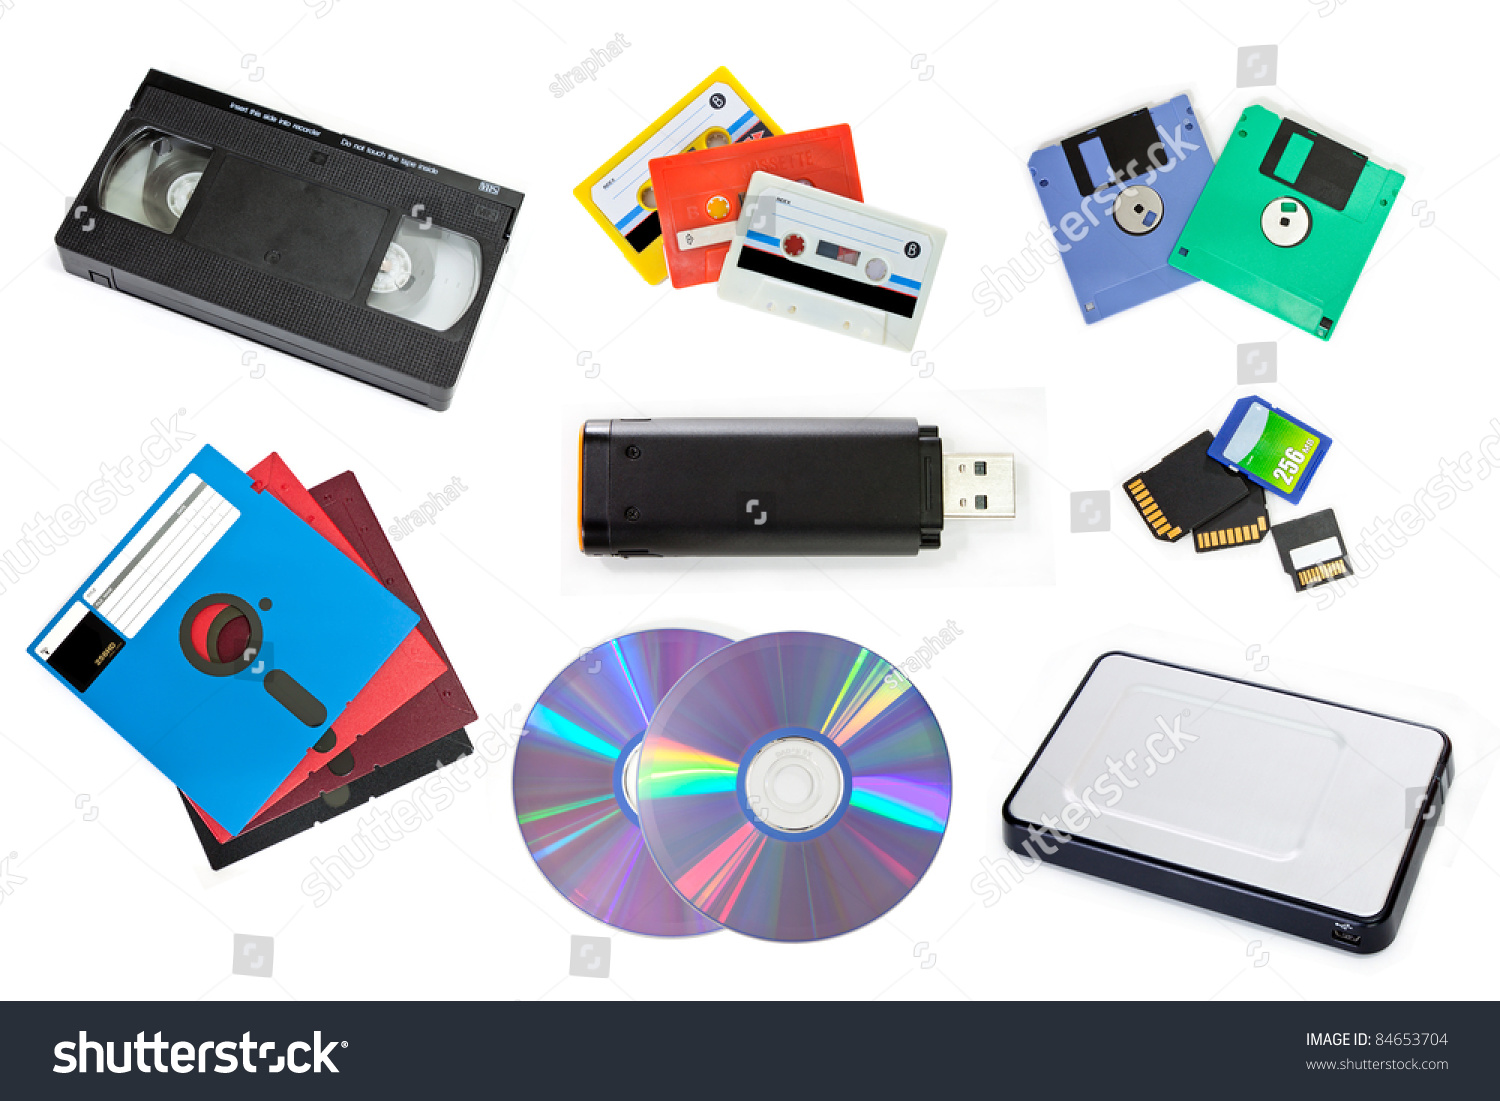 Different Types of Computer Storage Devices